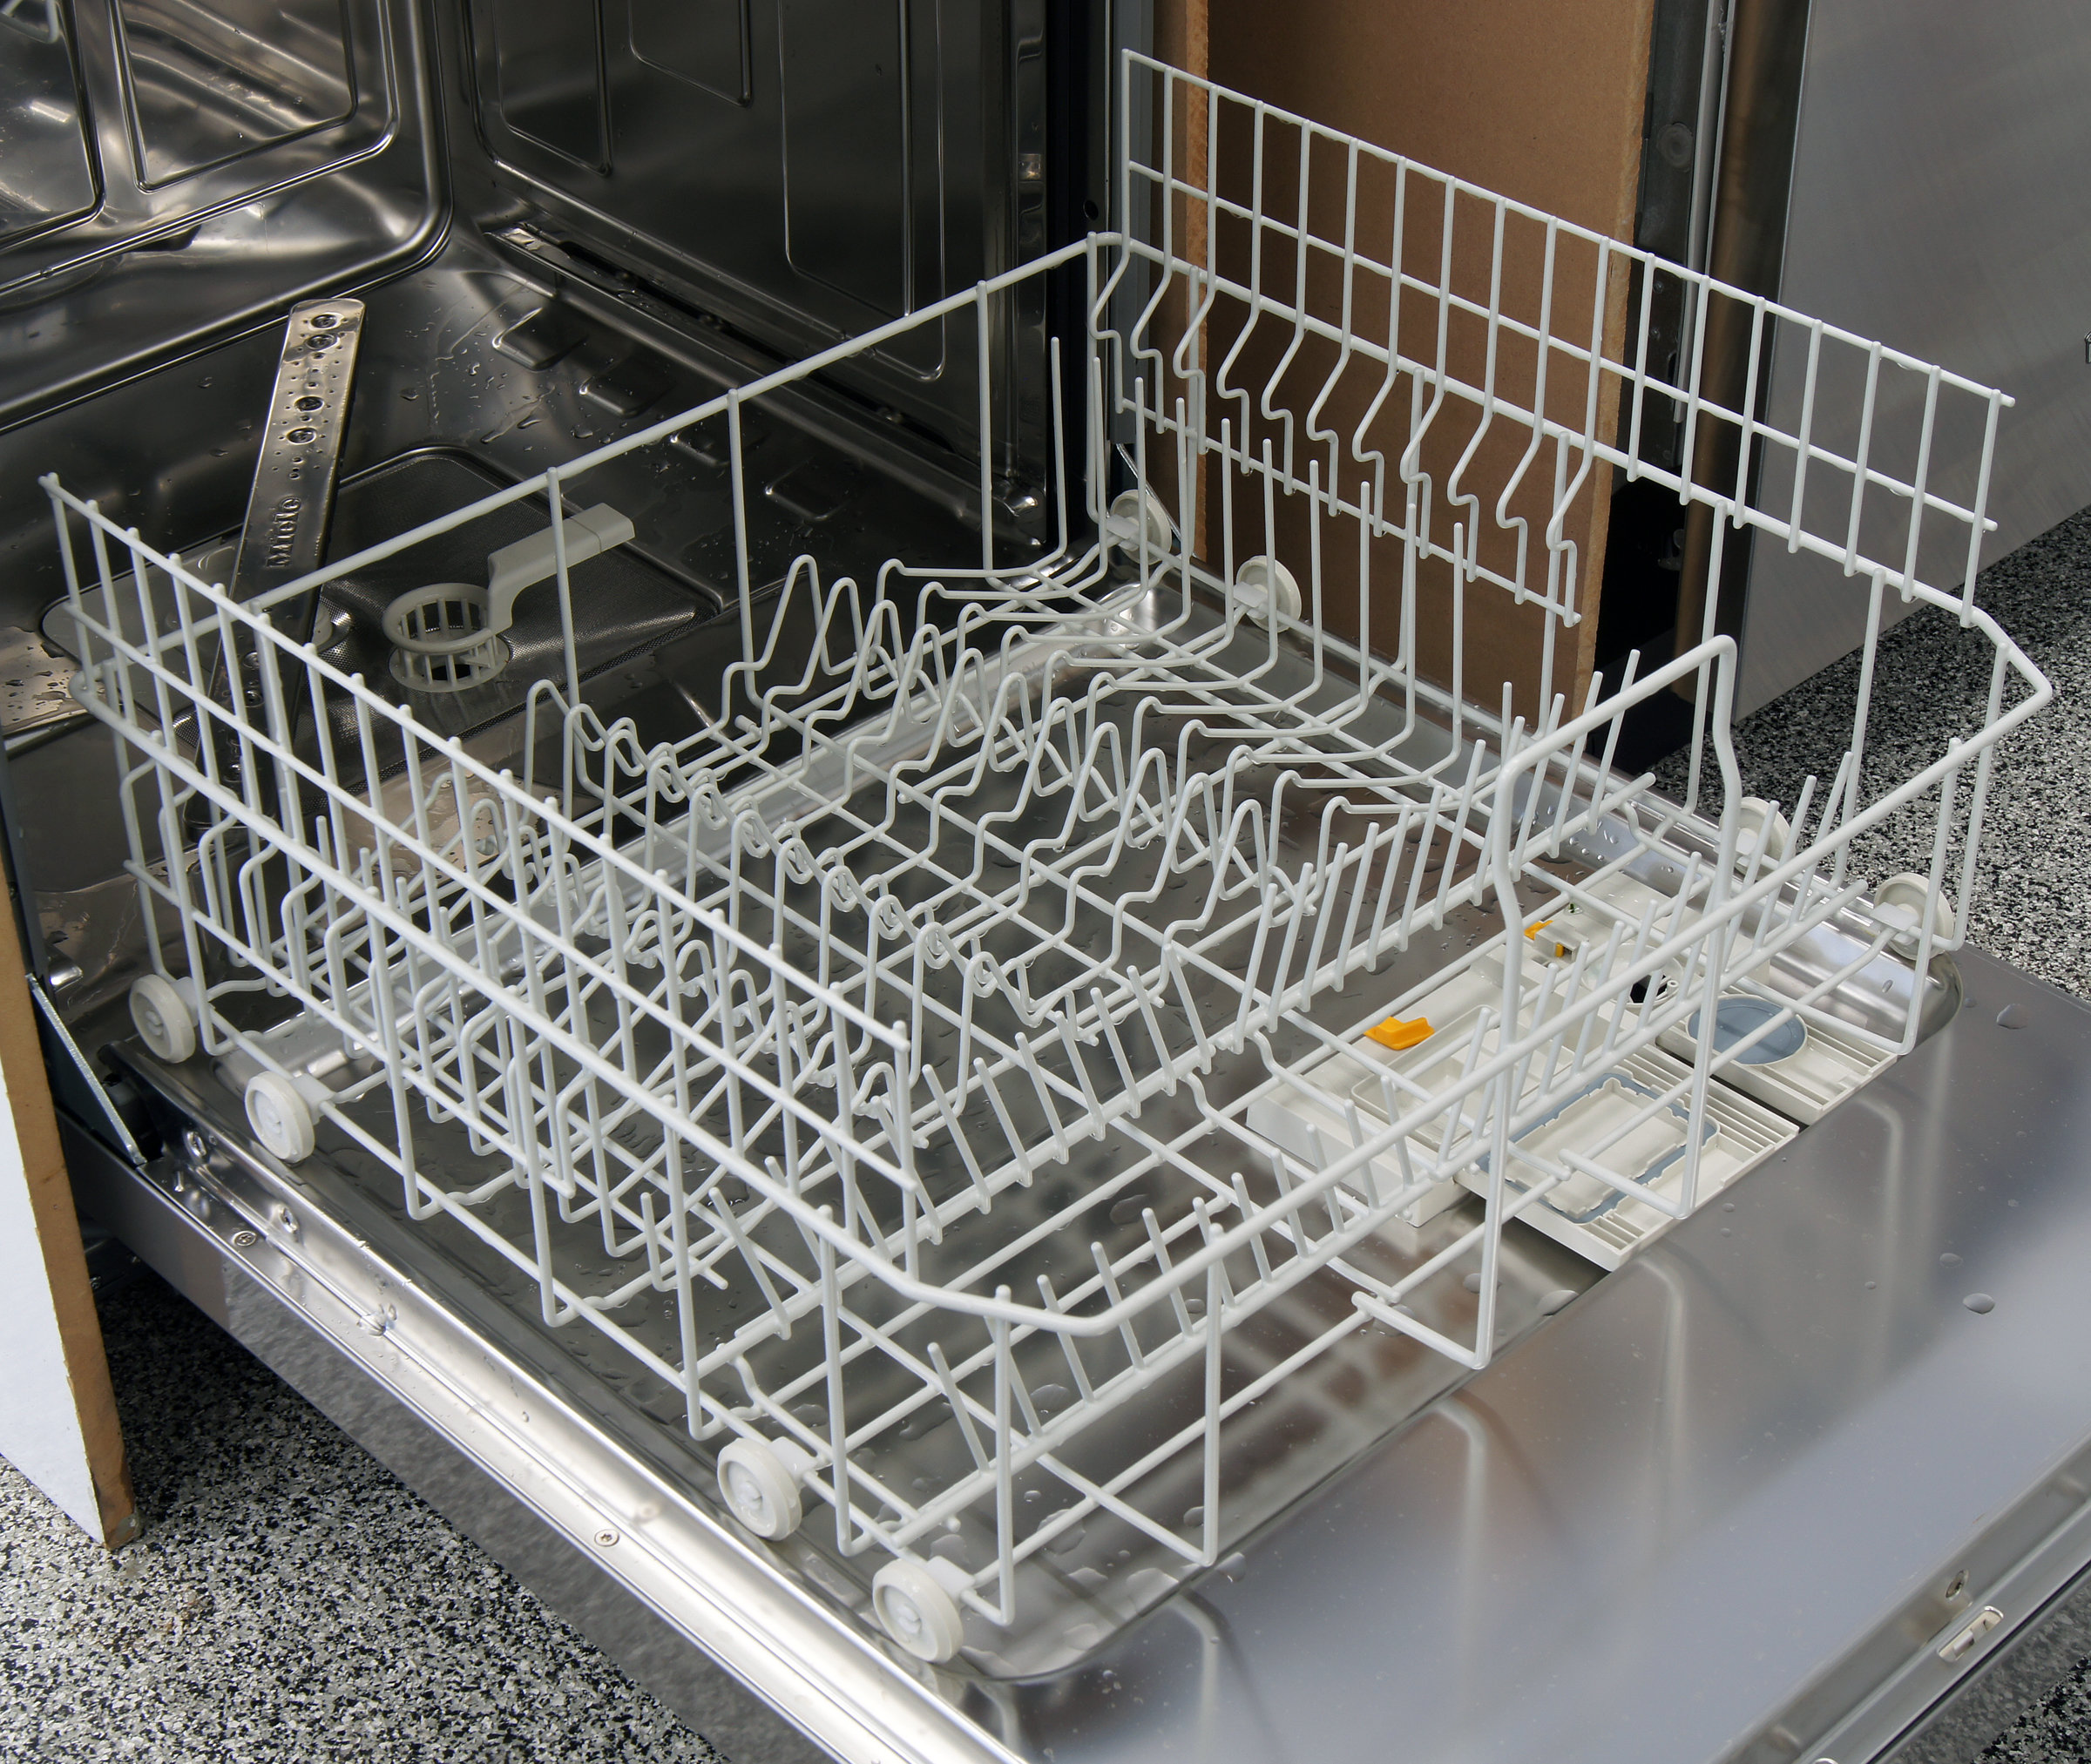 Miele G4225SCU bottom rack